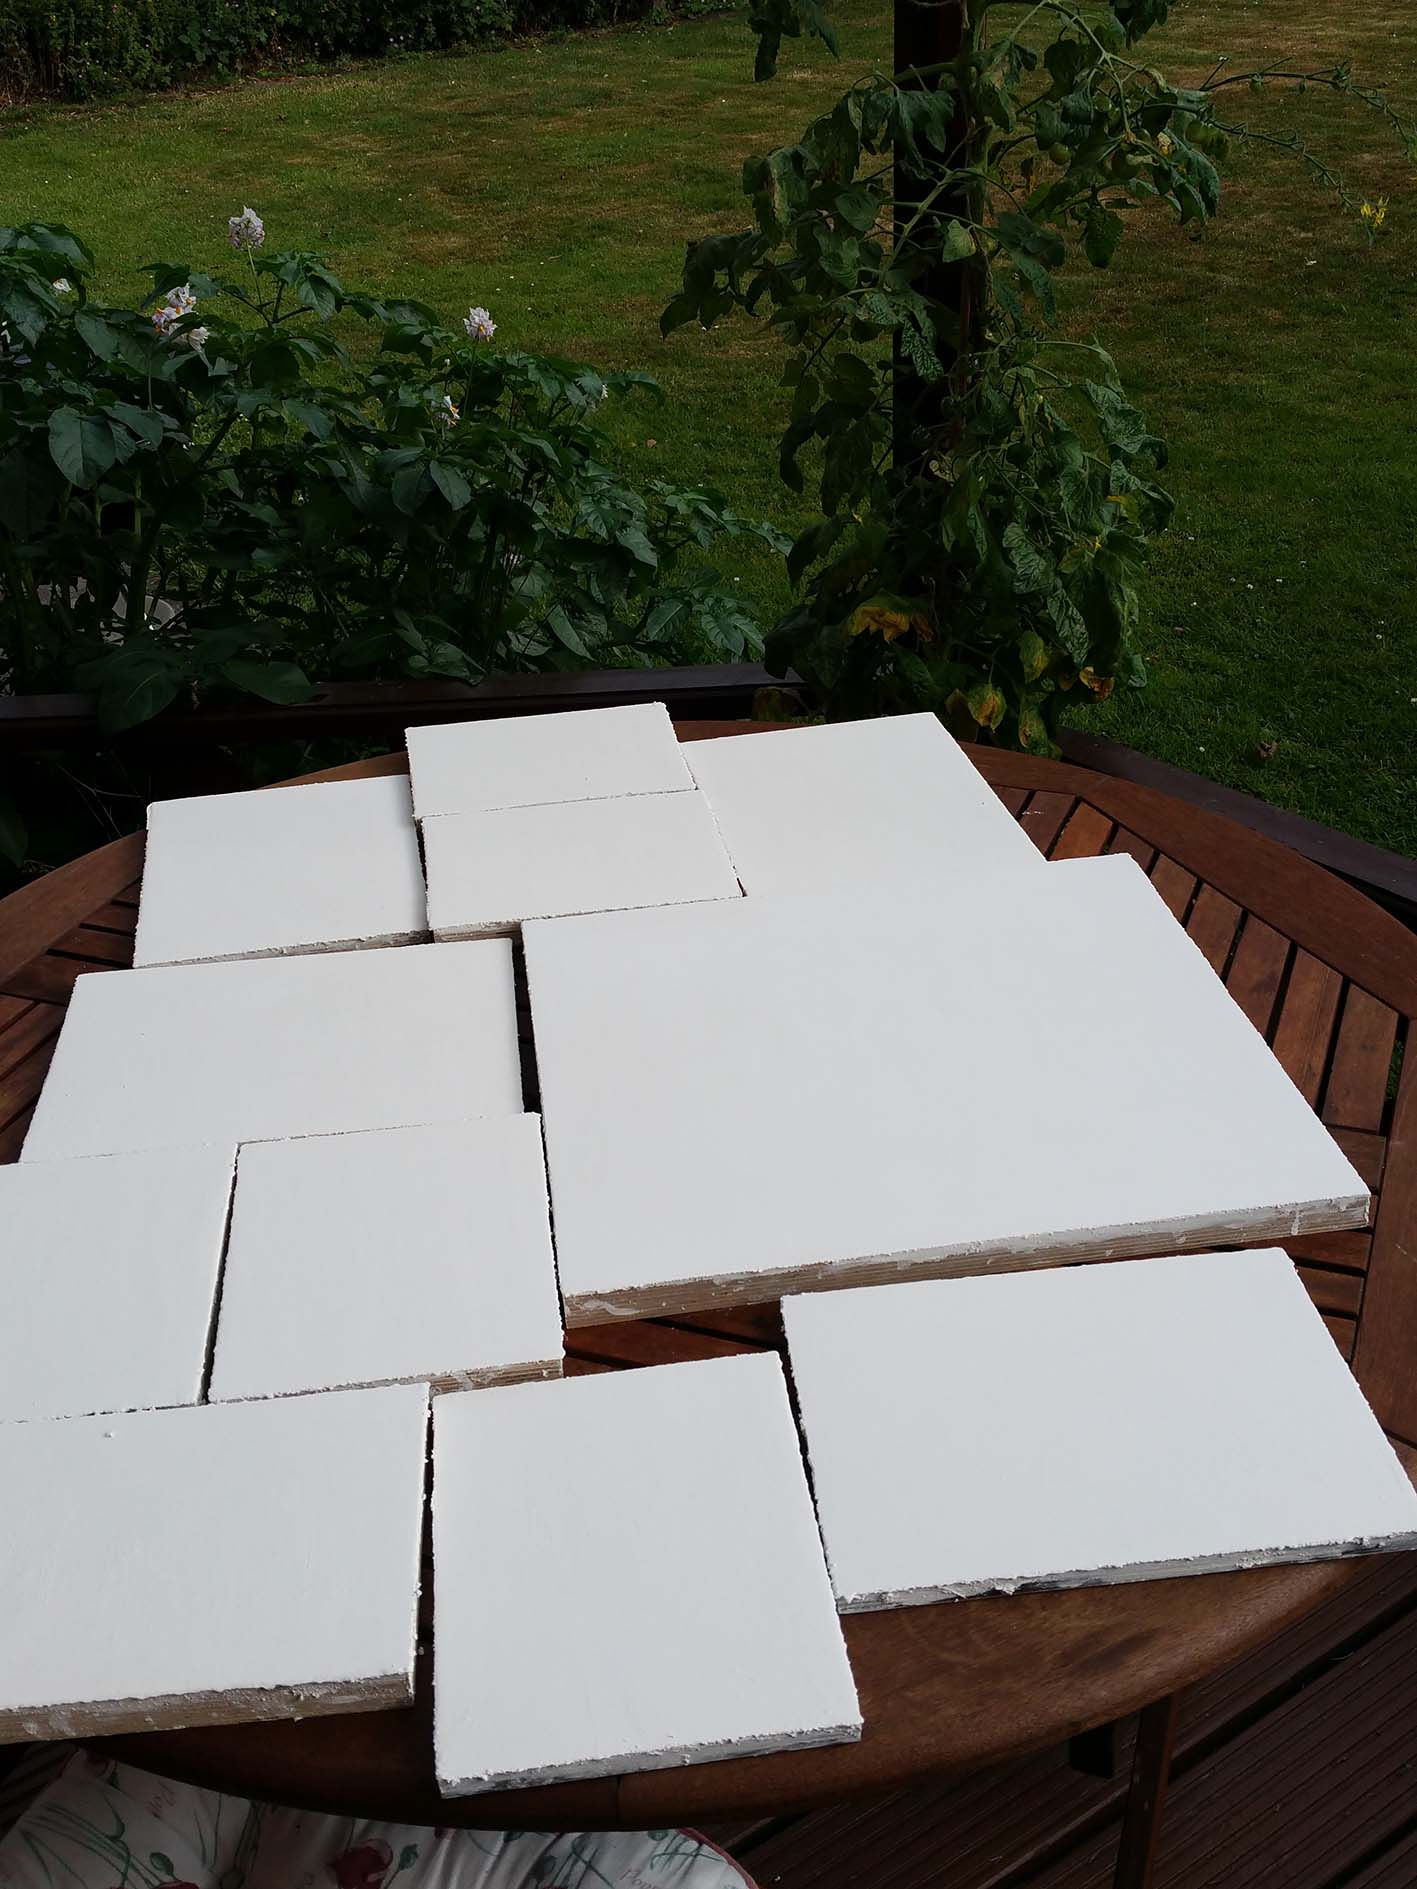 Gesso on iconboards